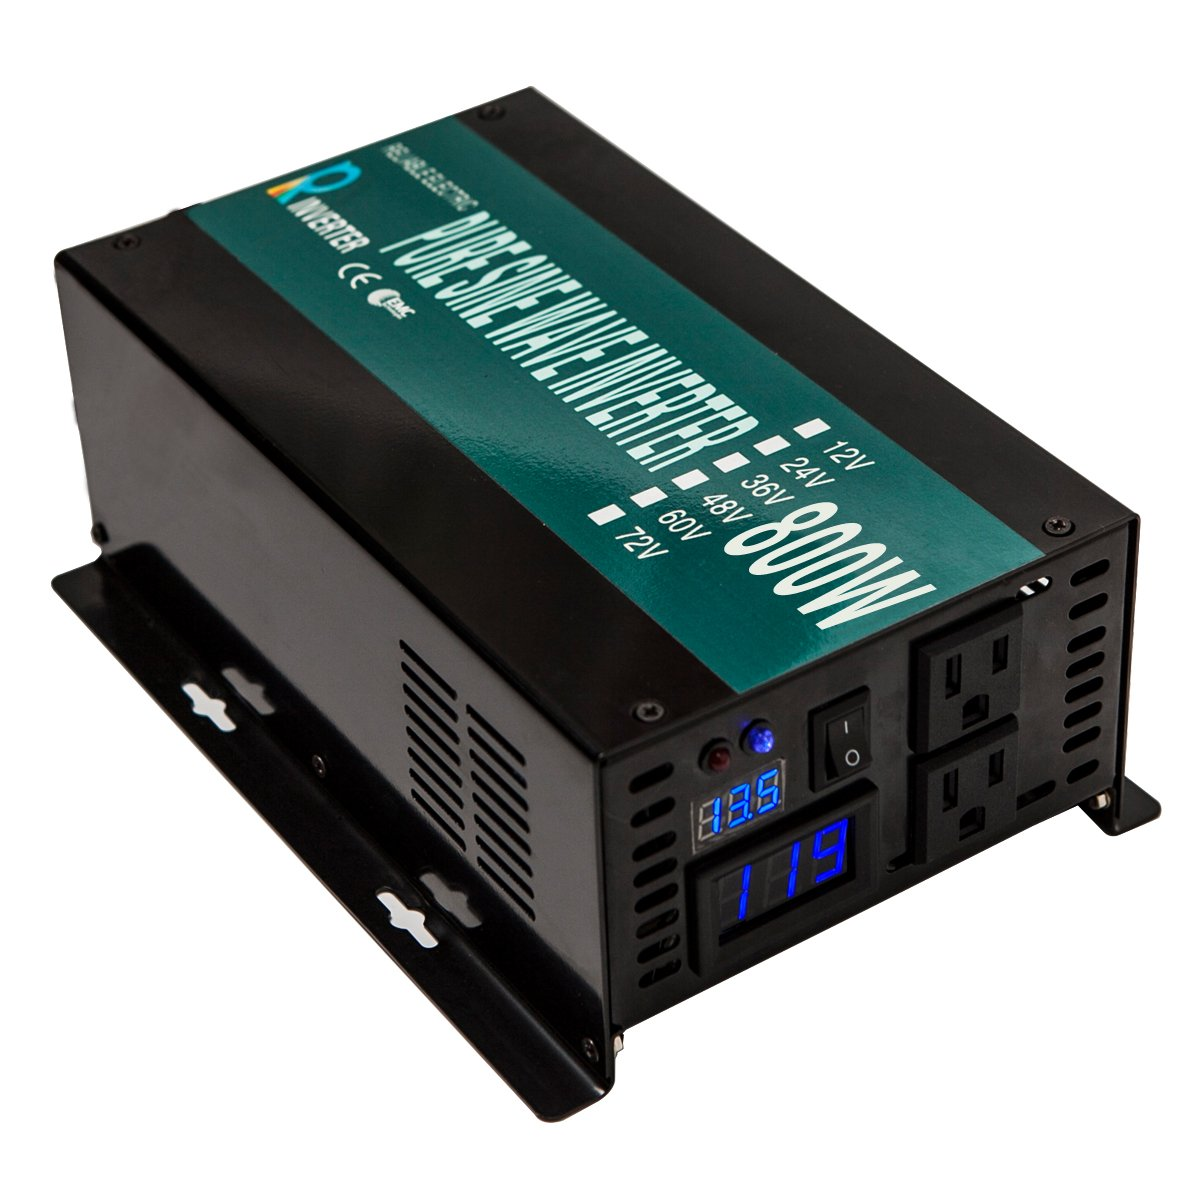 WZRELB Full Power Full Power Endurable Led Display 800W Pure Sine Wave Solar Inverter 12Vdc to 120Vac